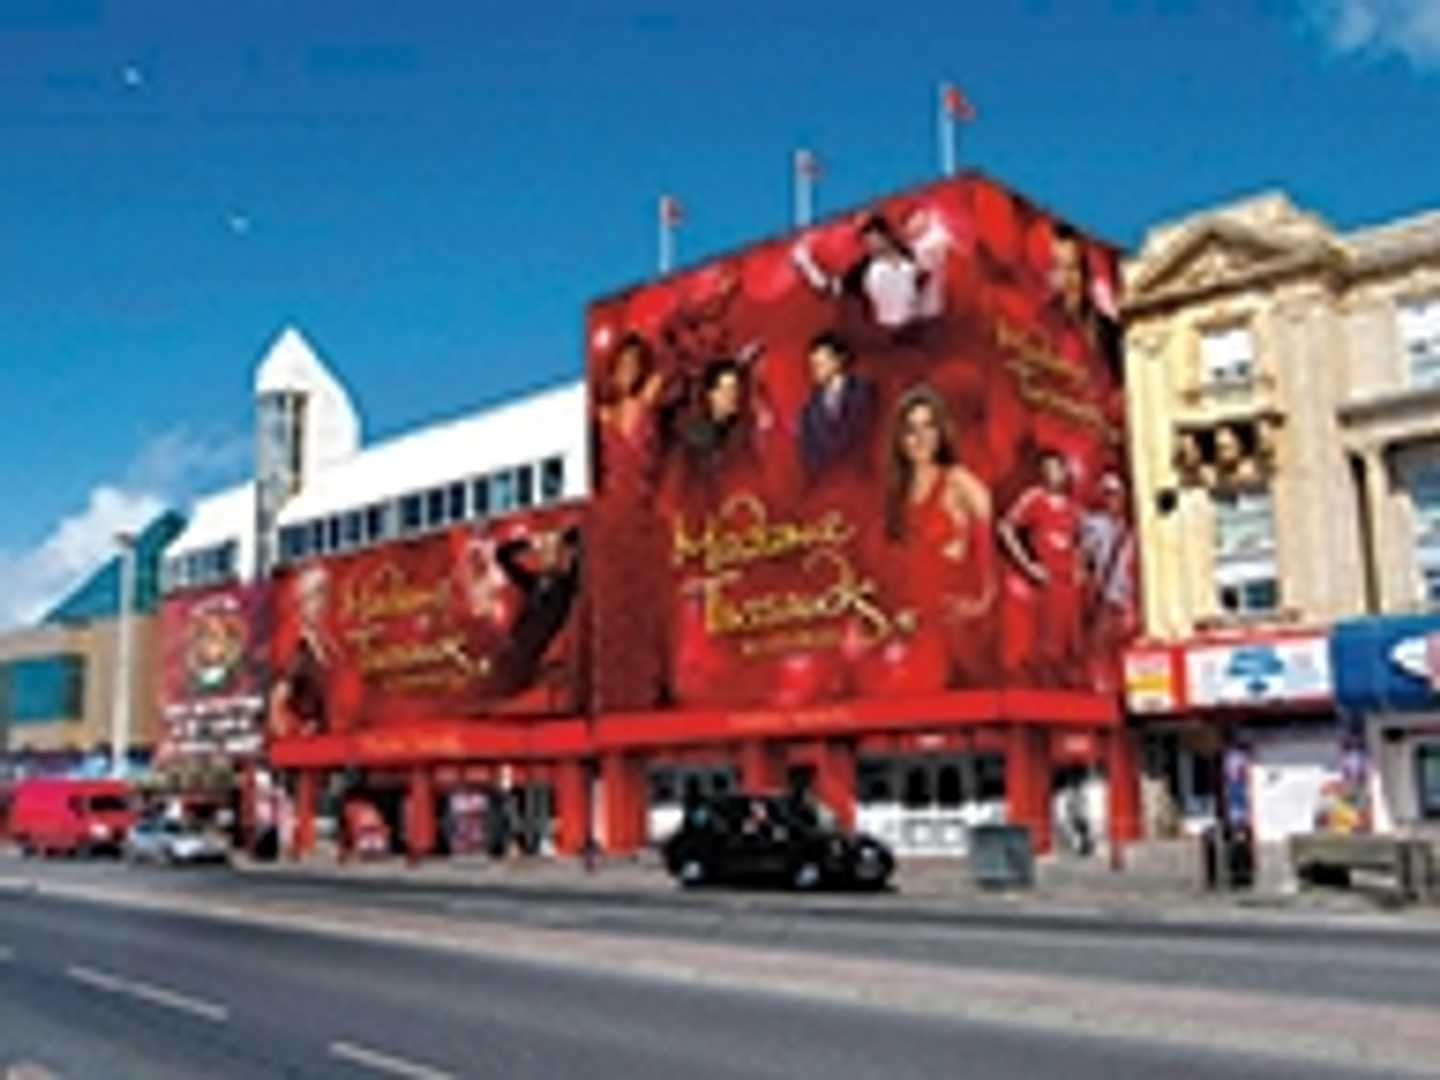 Madame Tussauds in Blackpool